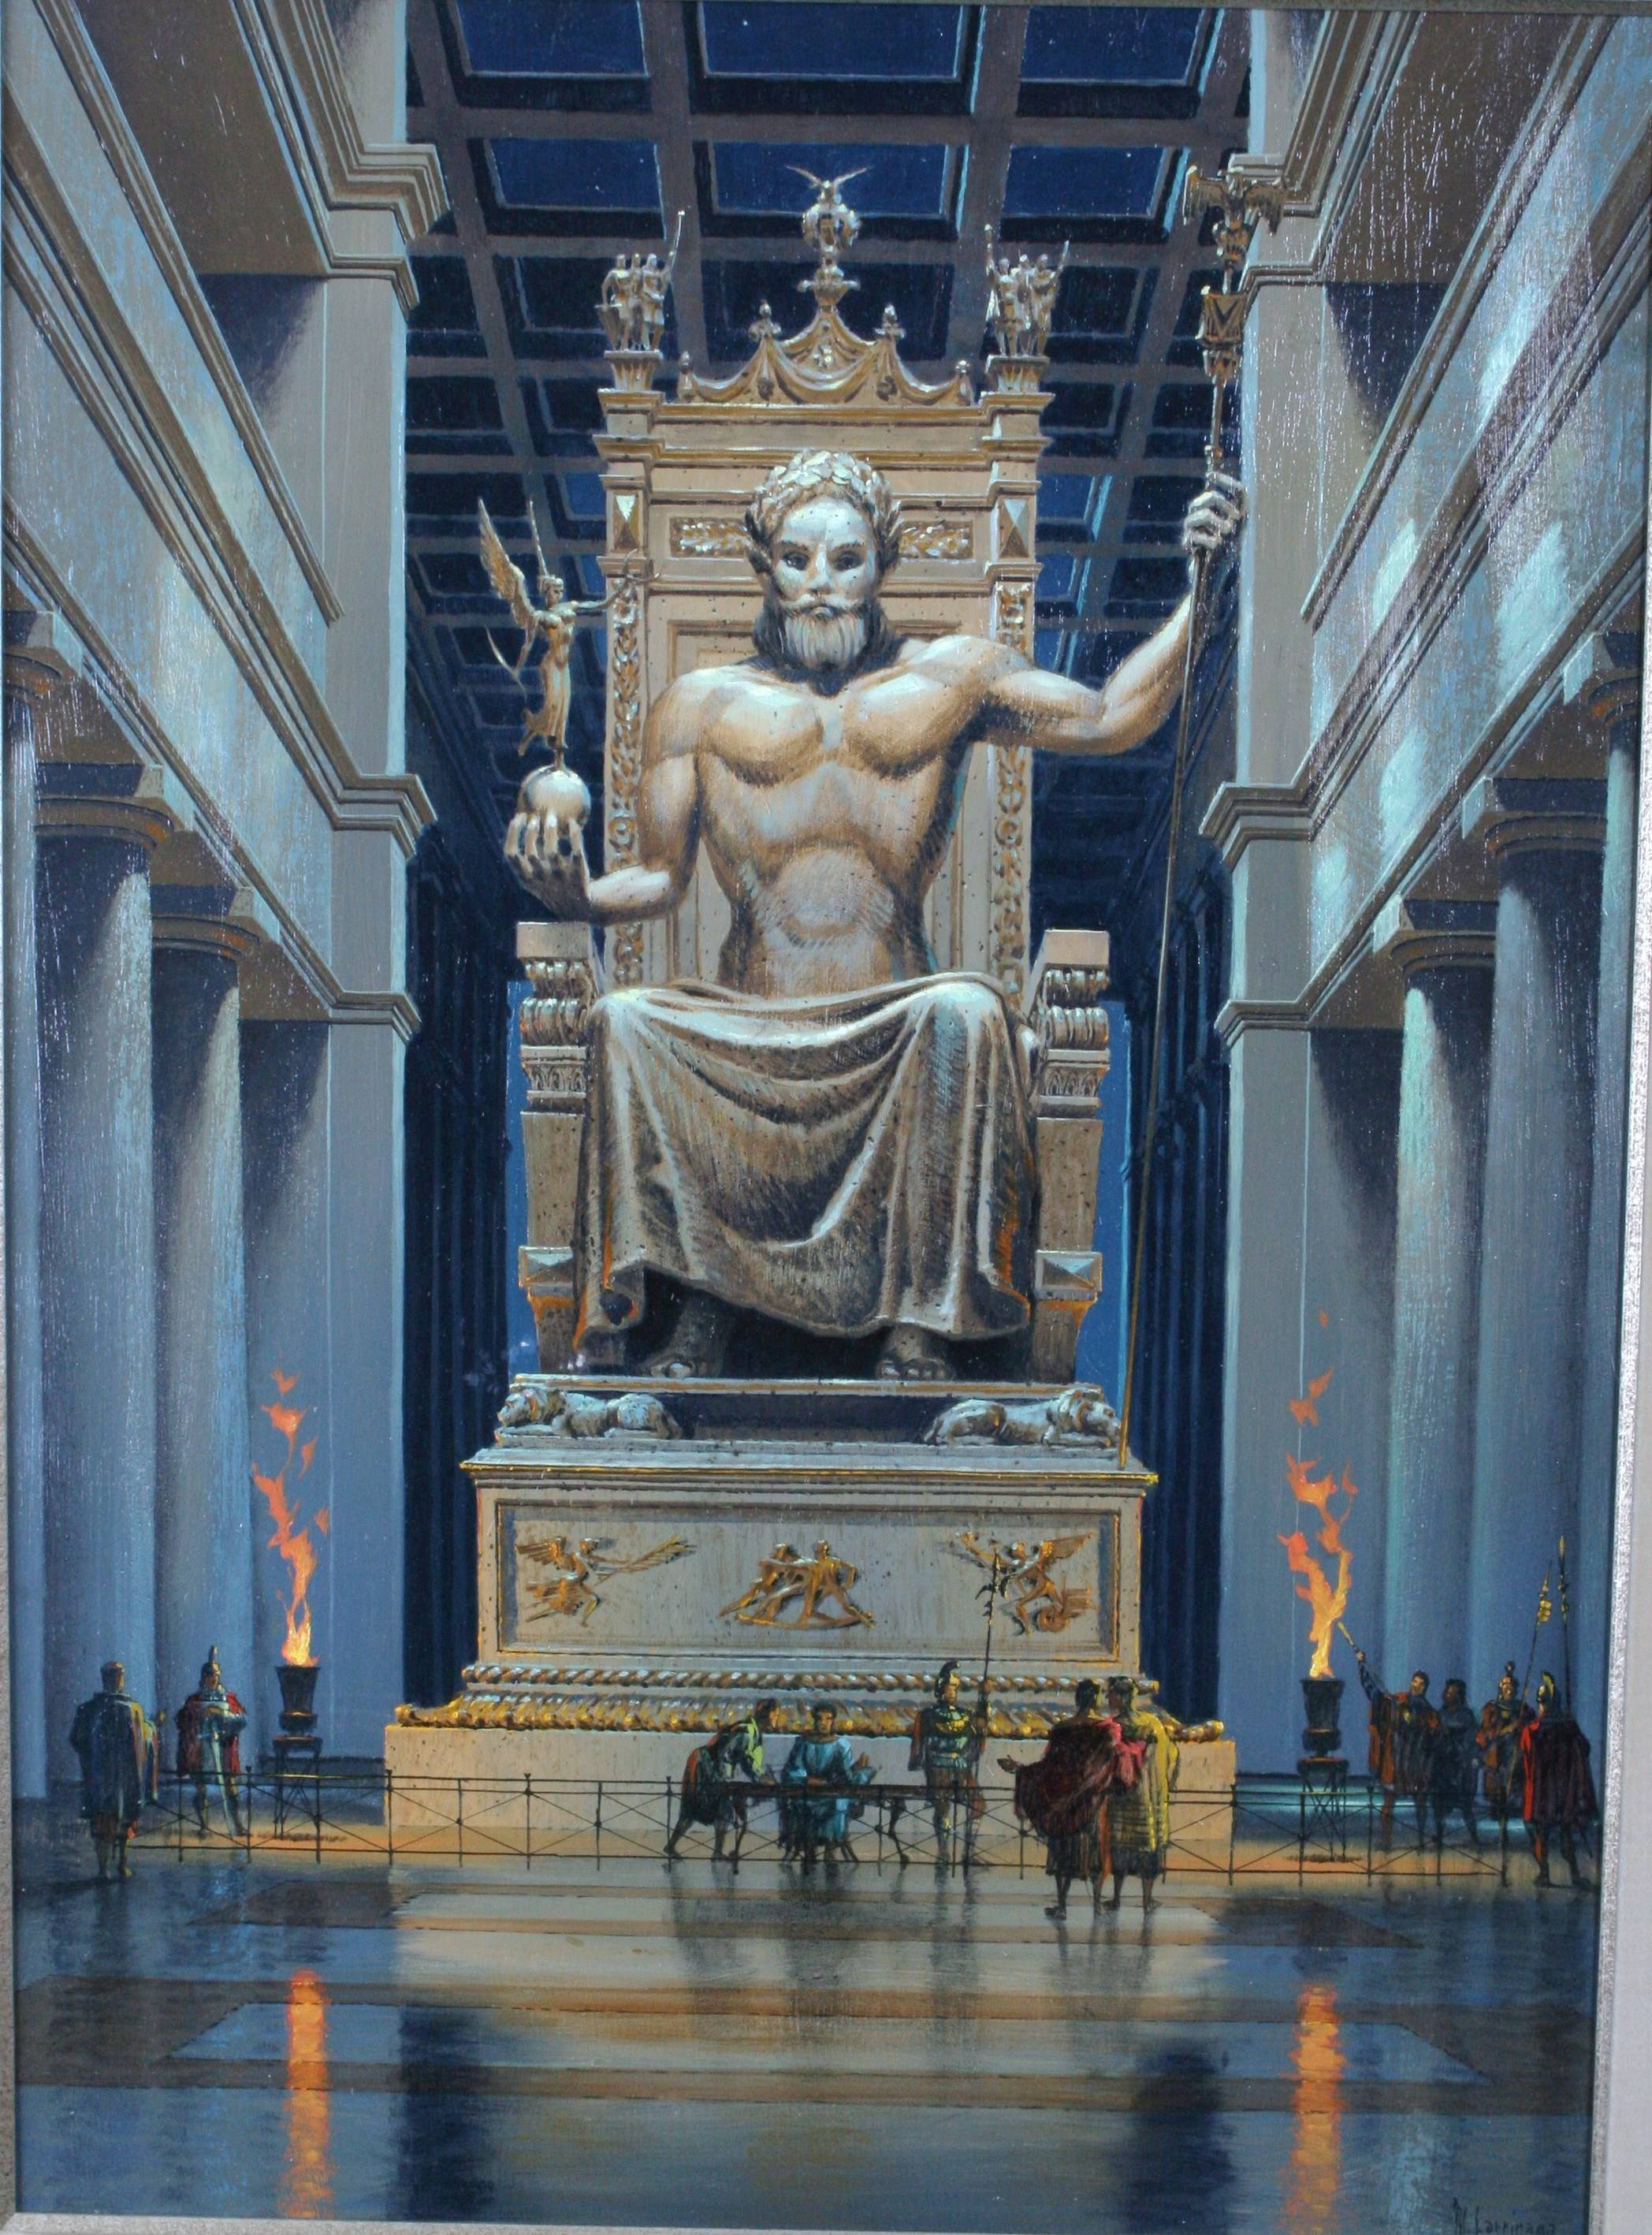 Research of the Ancient Seven Wonders – The Statue of Zeus ...